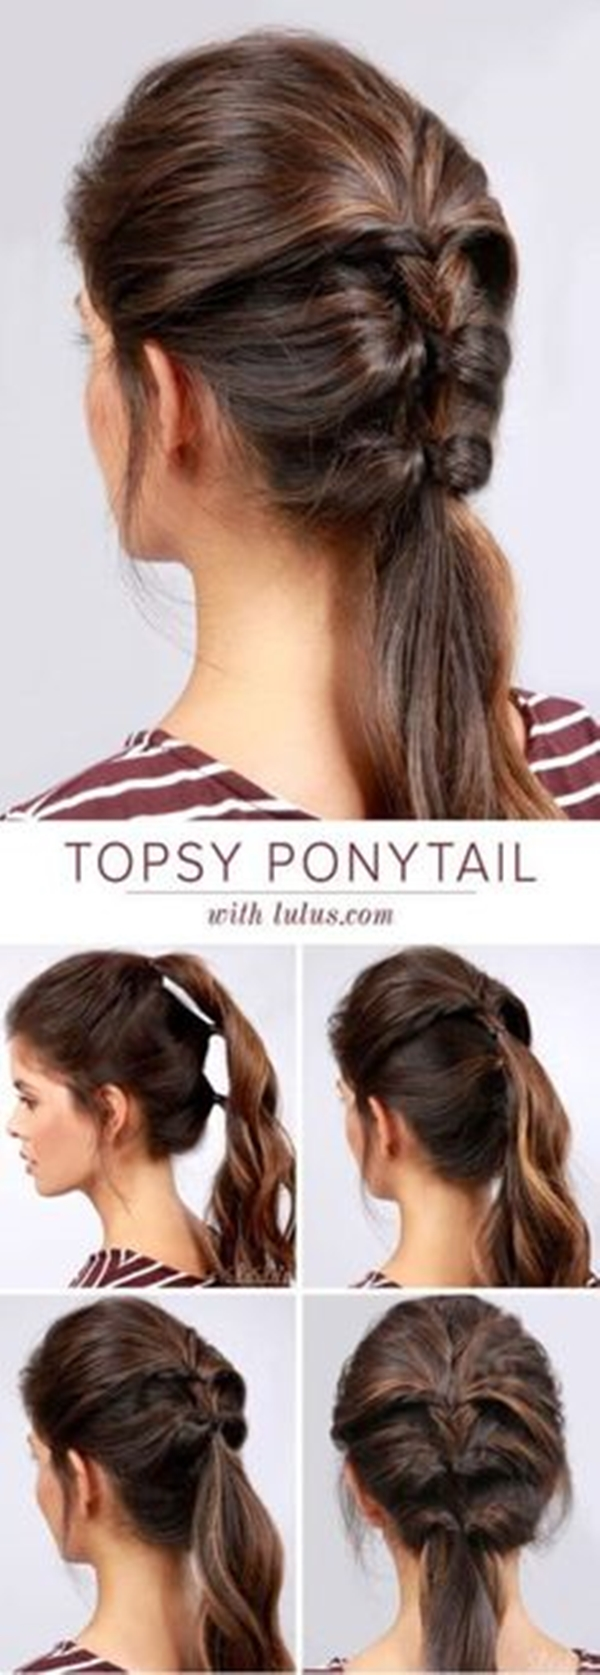 40 simple and sexy office hairstyles for women - buzz 2018